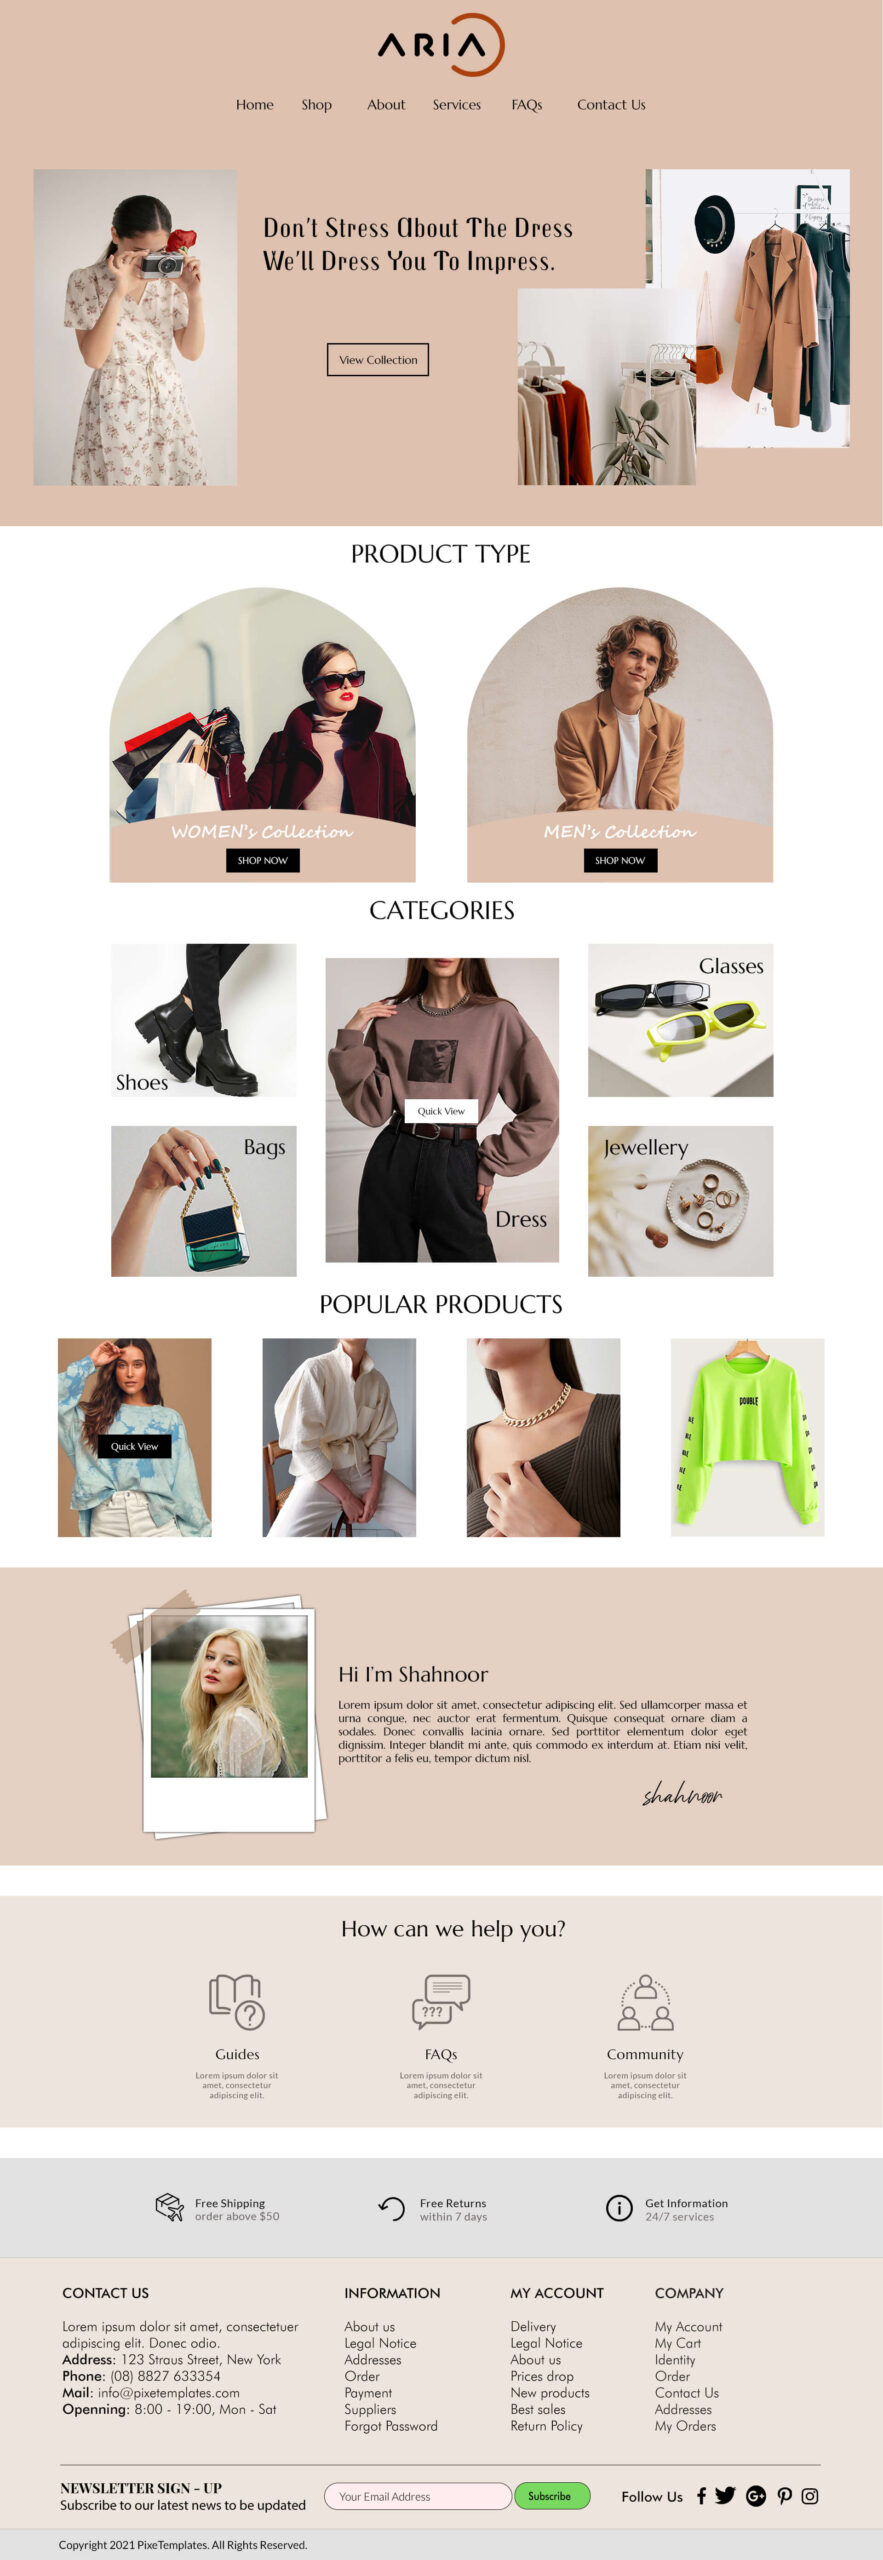 Website Template Related to Fashion Industry in PSD Format